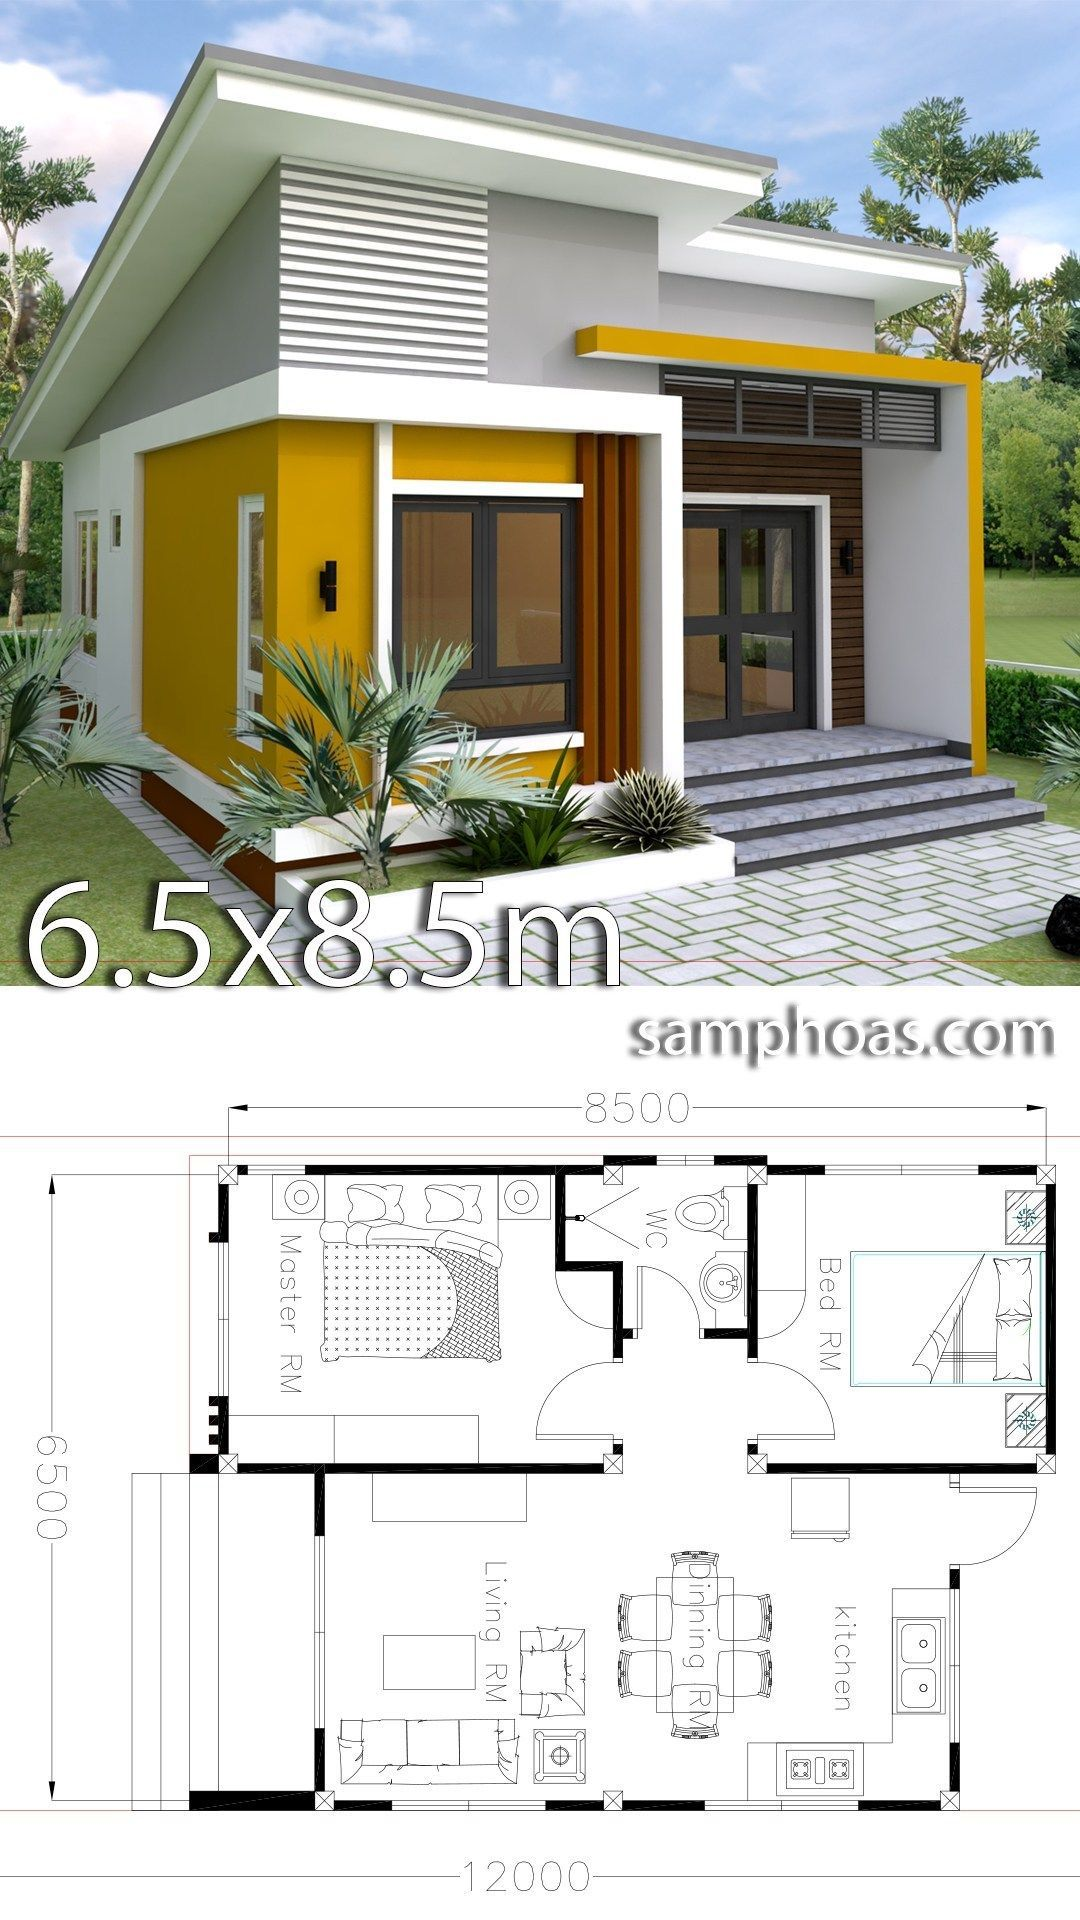 Small Home Design Plan 6 5x8 5m With 2 Bedrooms Samphoas Plansearch Bedroomdesignlayoutplan Small House Design Plans Simple House Design Small House Design